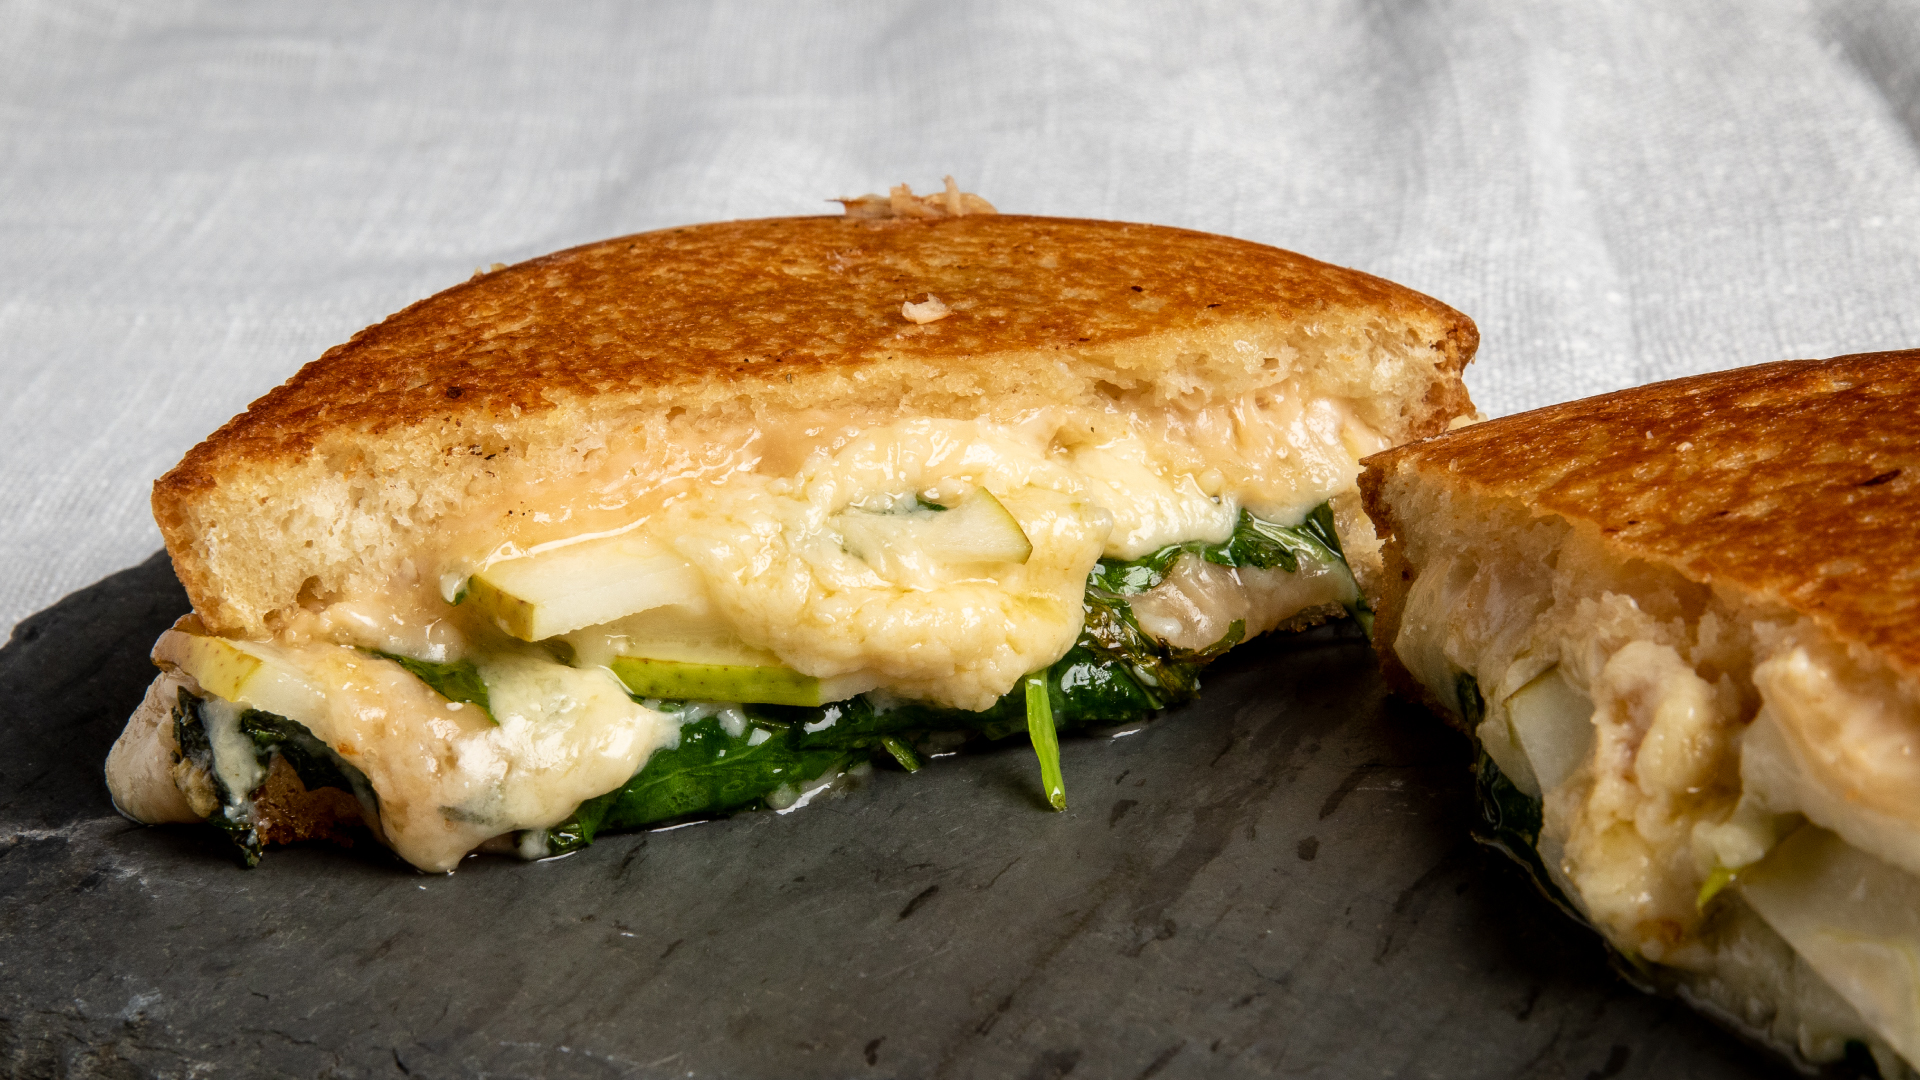 Beecher's Grilled Cheese with Pears & Kale